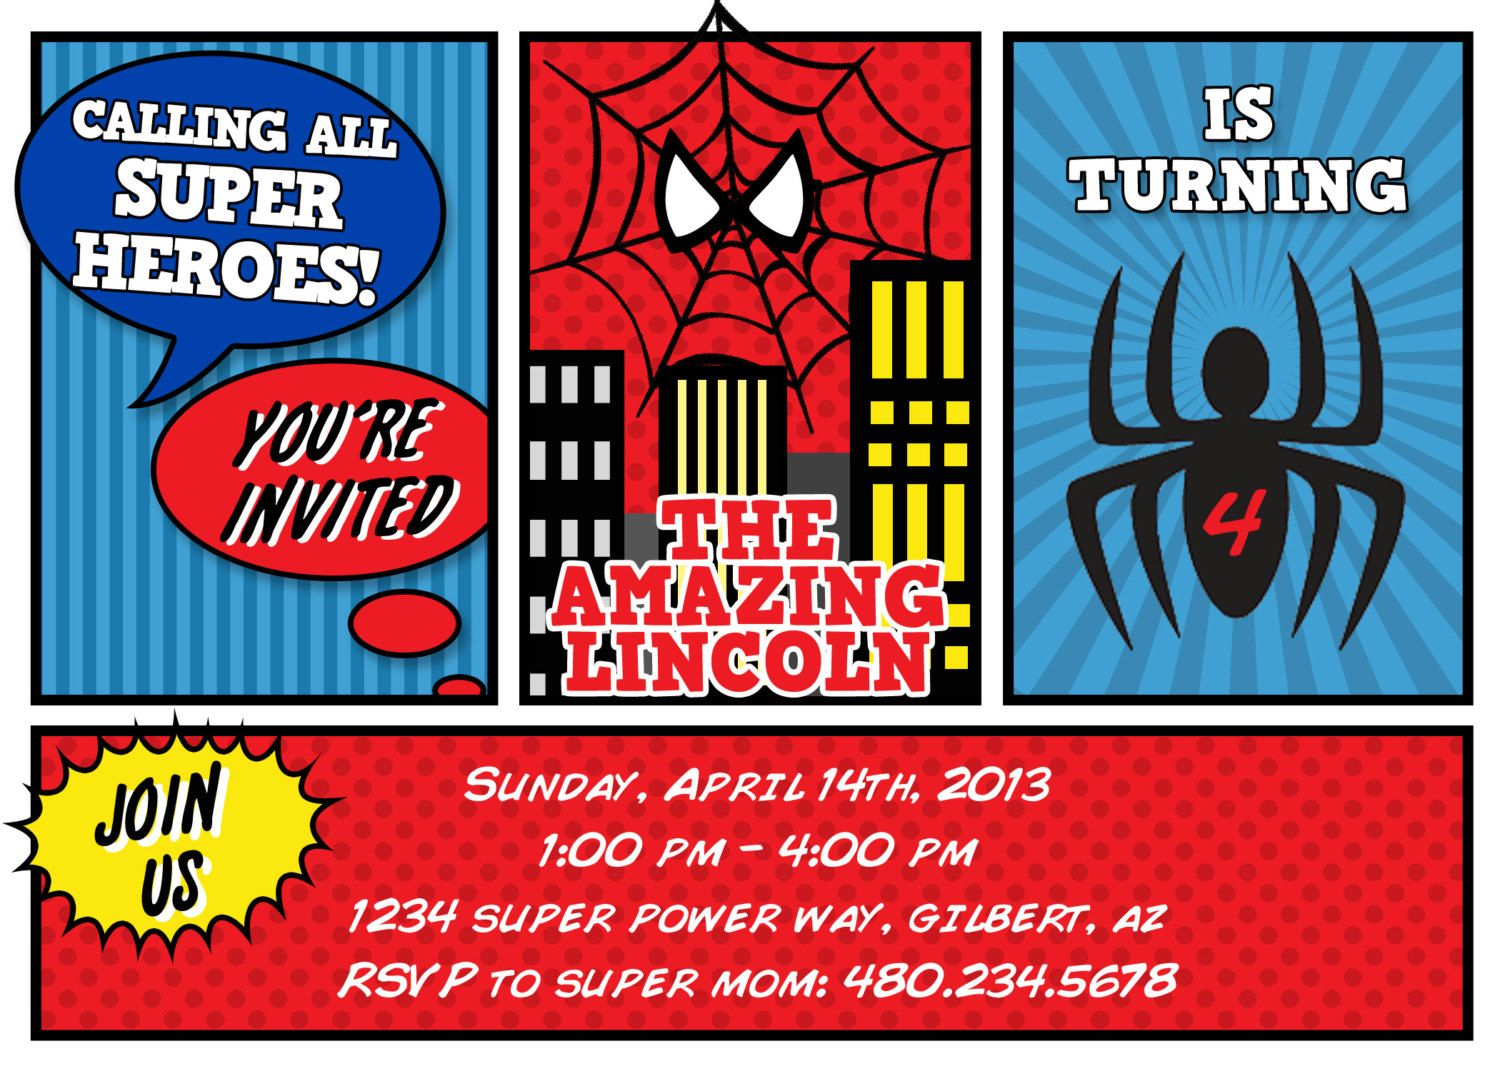 Printable Party Spiderman Inspired Birthday Invitation Petite Party Studio 1 Spiderman Invitation Spiderman Birthday Birthday Party Invitations Printable